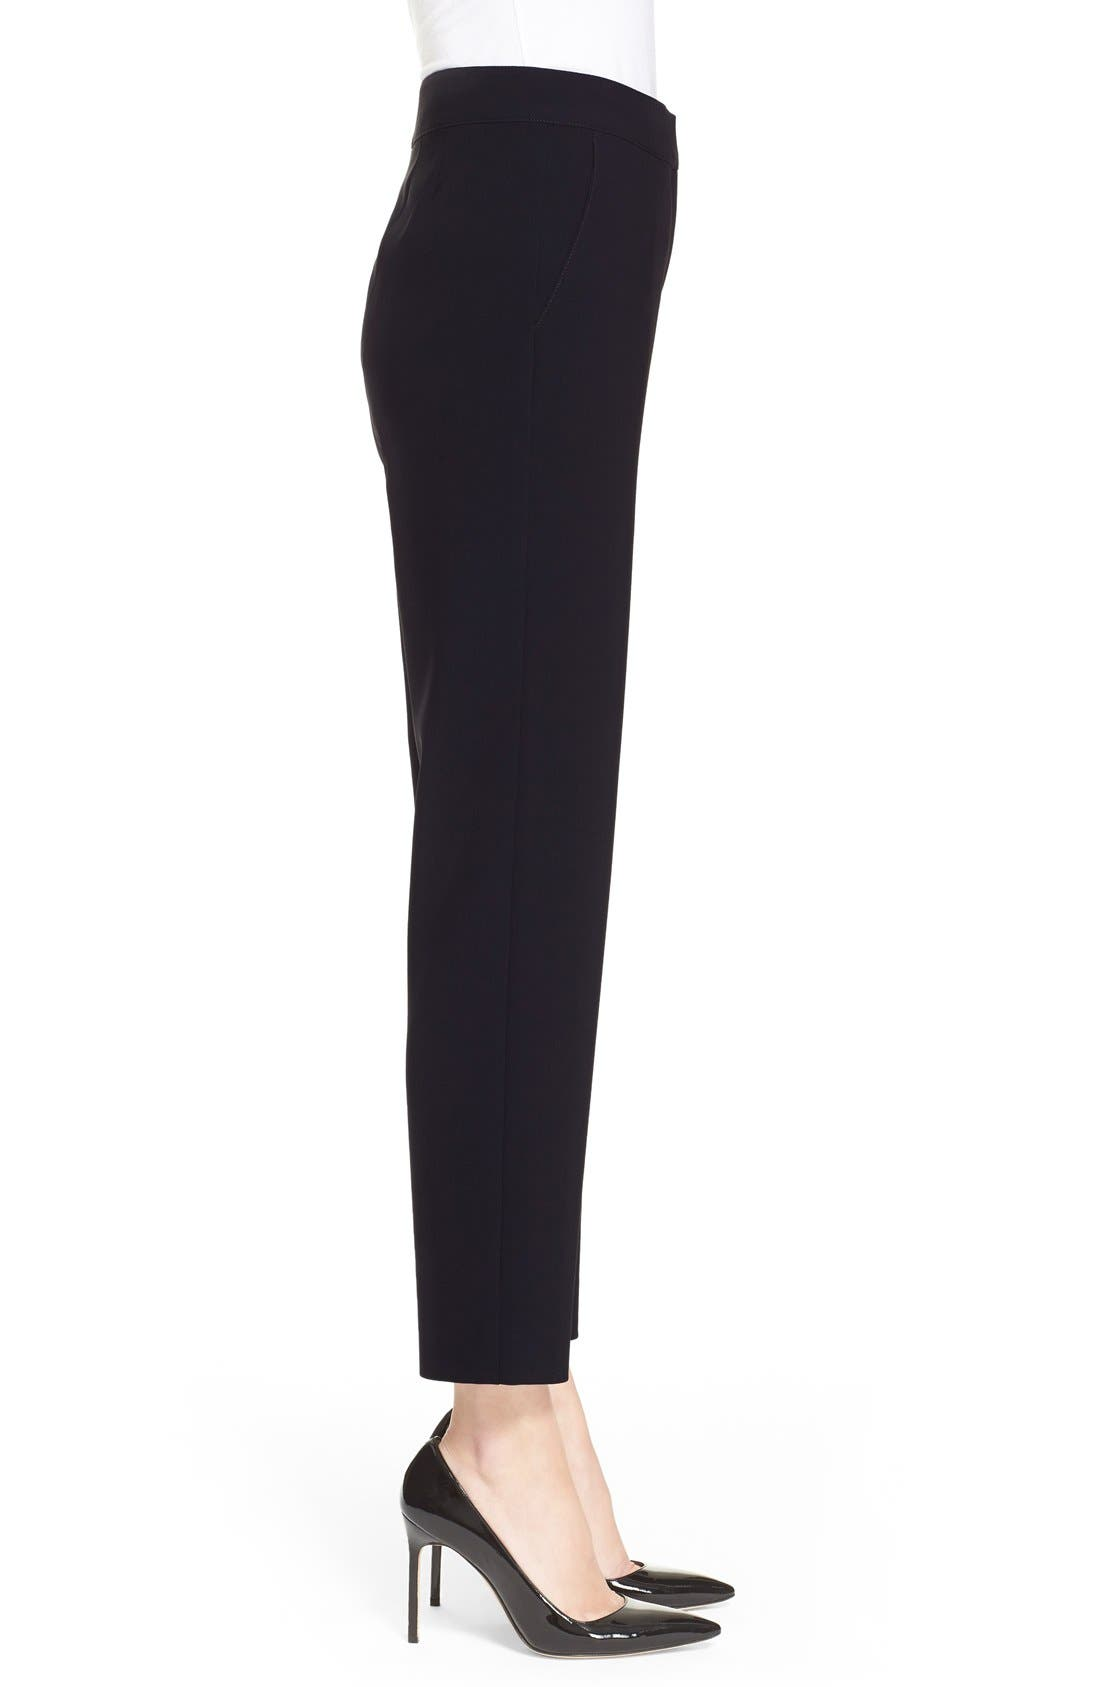 'Emma' Crop Crepe Marocain Pants,                             Alternate thumbnail 6, color,                             CAVIAR